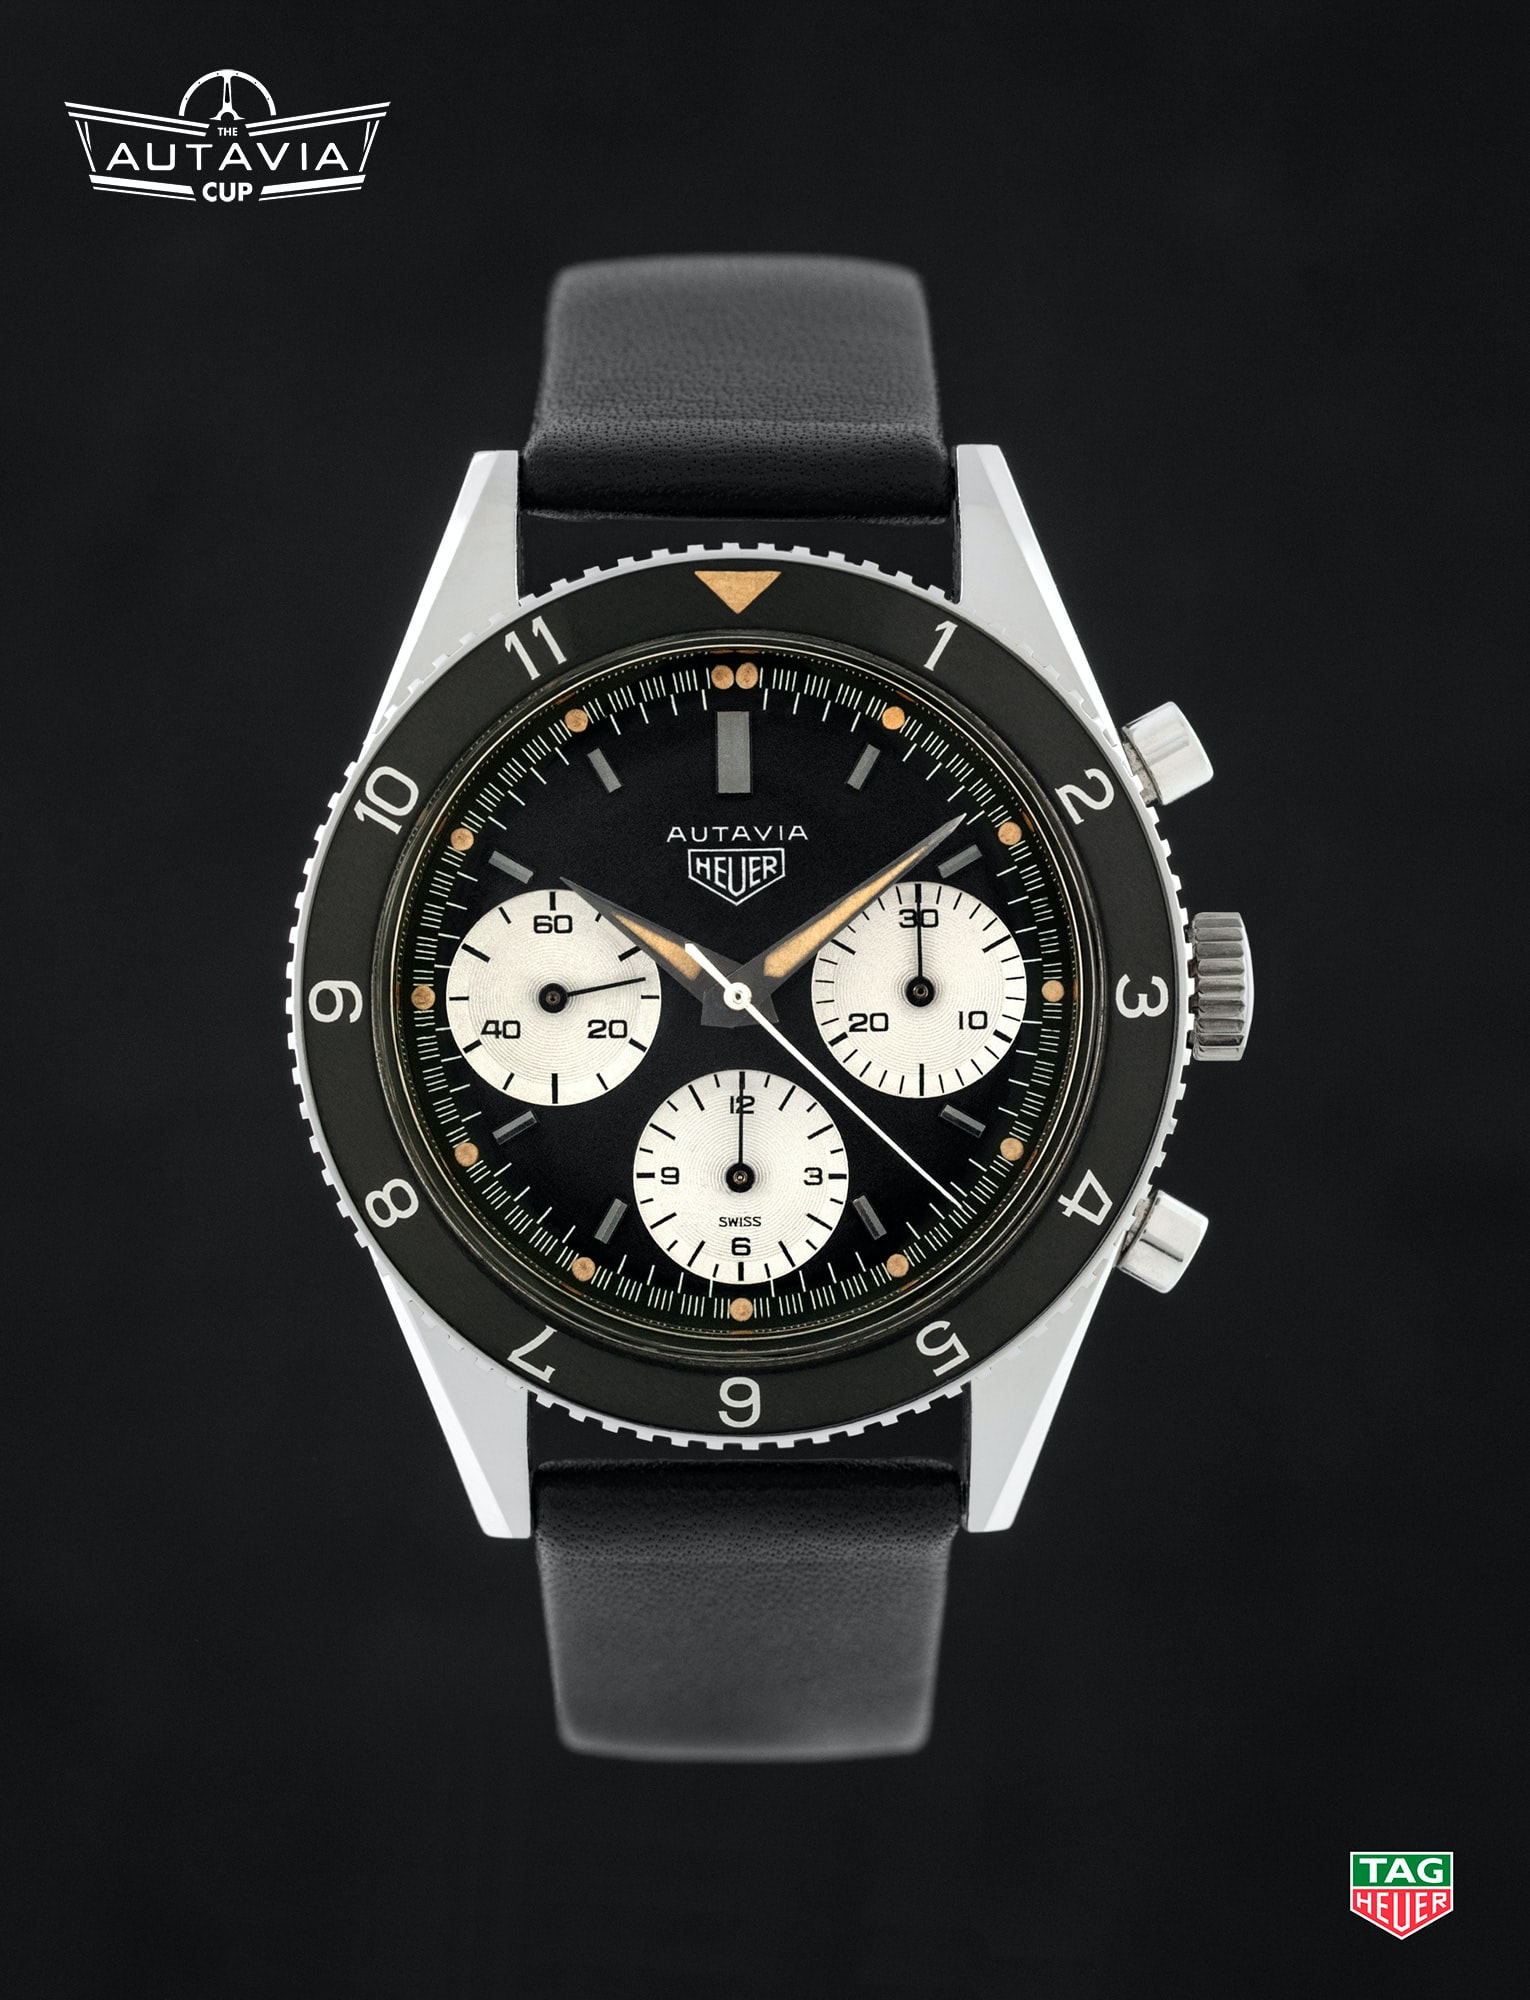 Heuer Autavia Ref. 2446 Mk2 TAG Heuer Will Relaunch The Autavia In 2017 – And Fans Get To Choose The Model TAG Heuer Will Relaunch The Autavia In 2017 – And Fans Get To Choose The Model 10 2446 Mk2